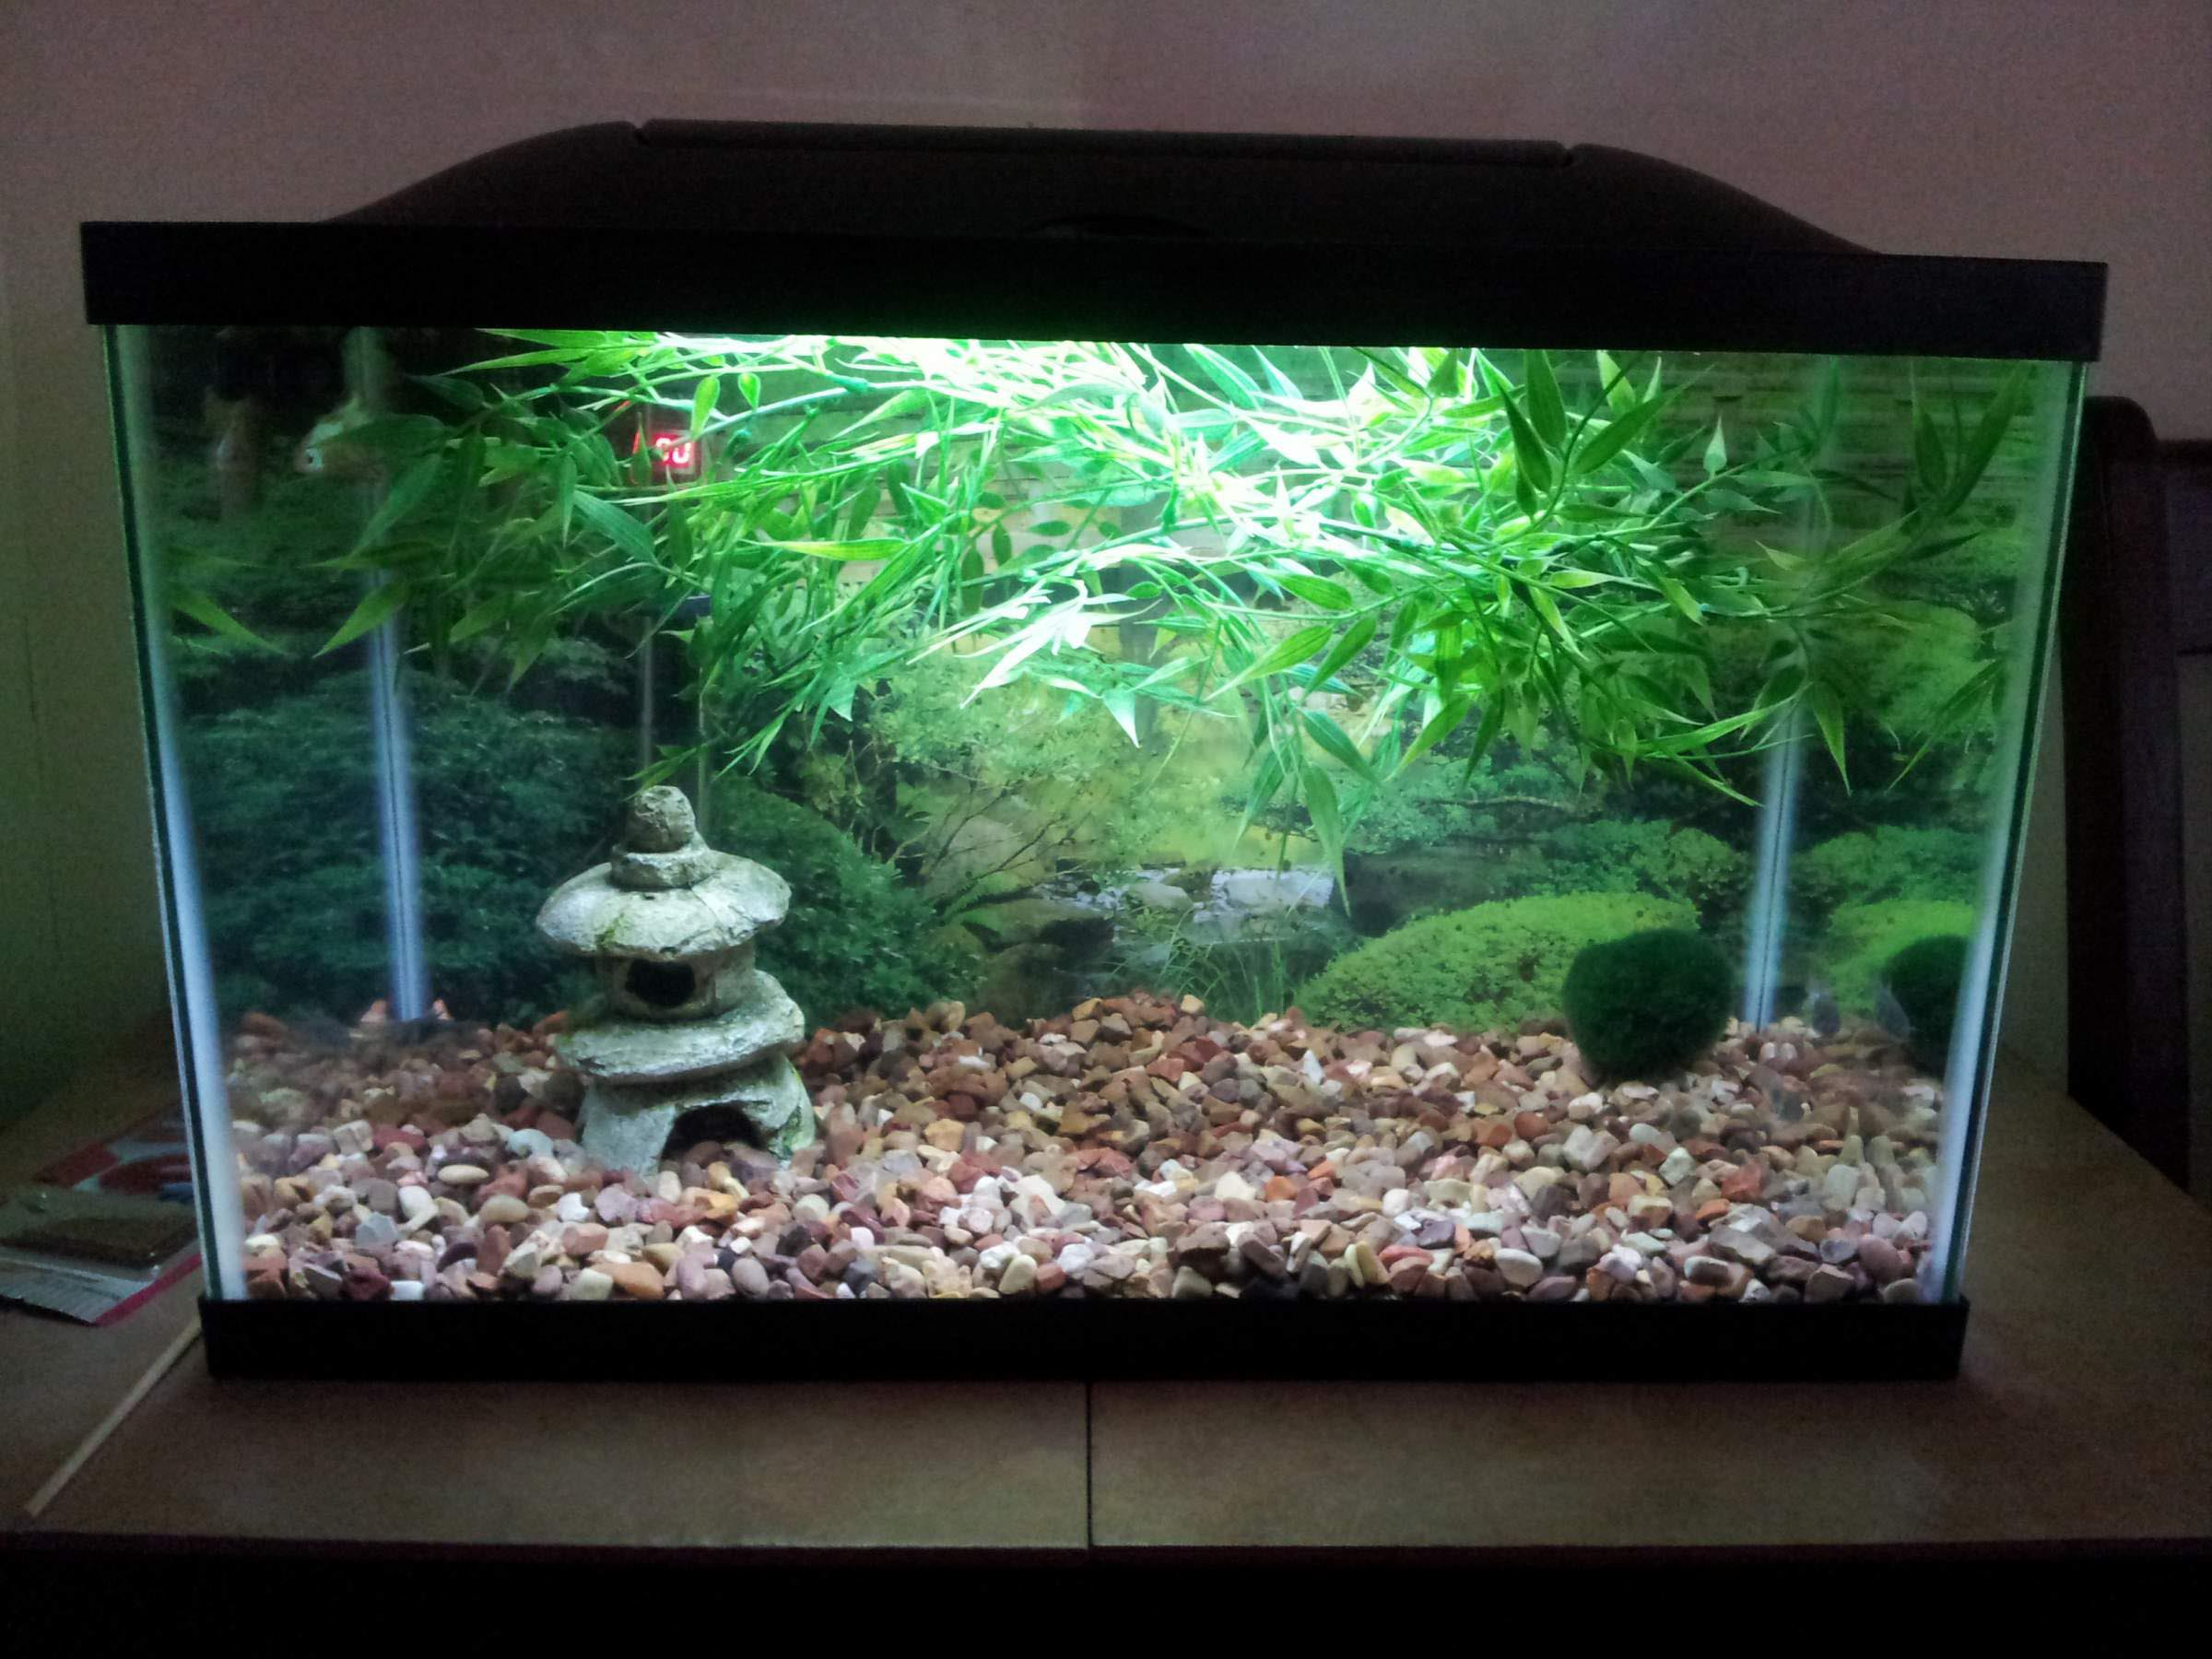 Fish aquarium decorations 28 images popular fish for Aquarium decoration ideas cheap